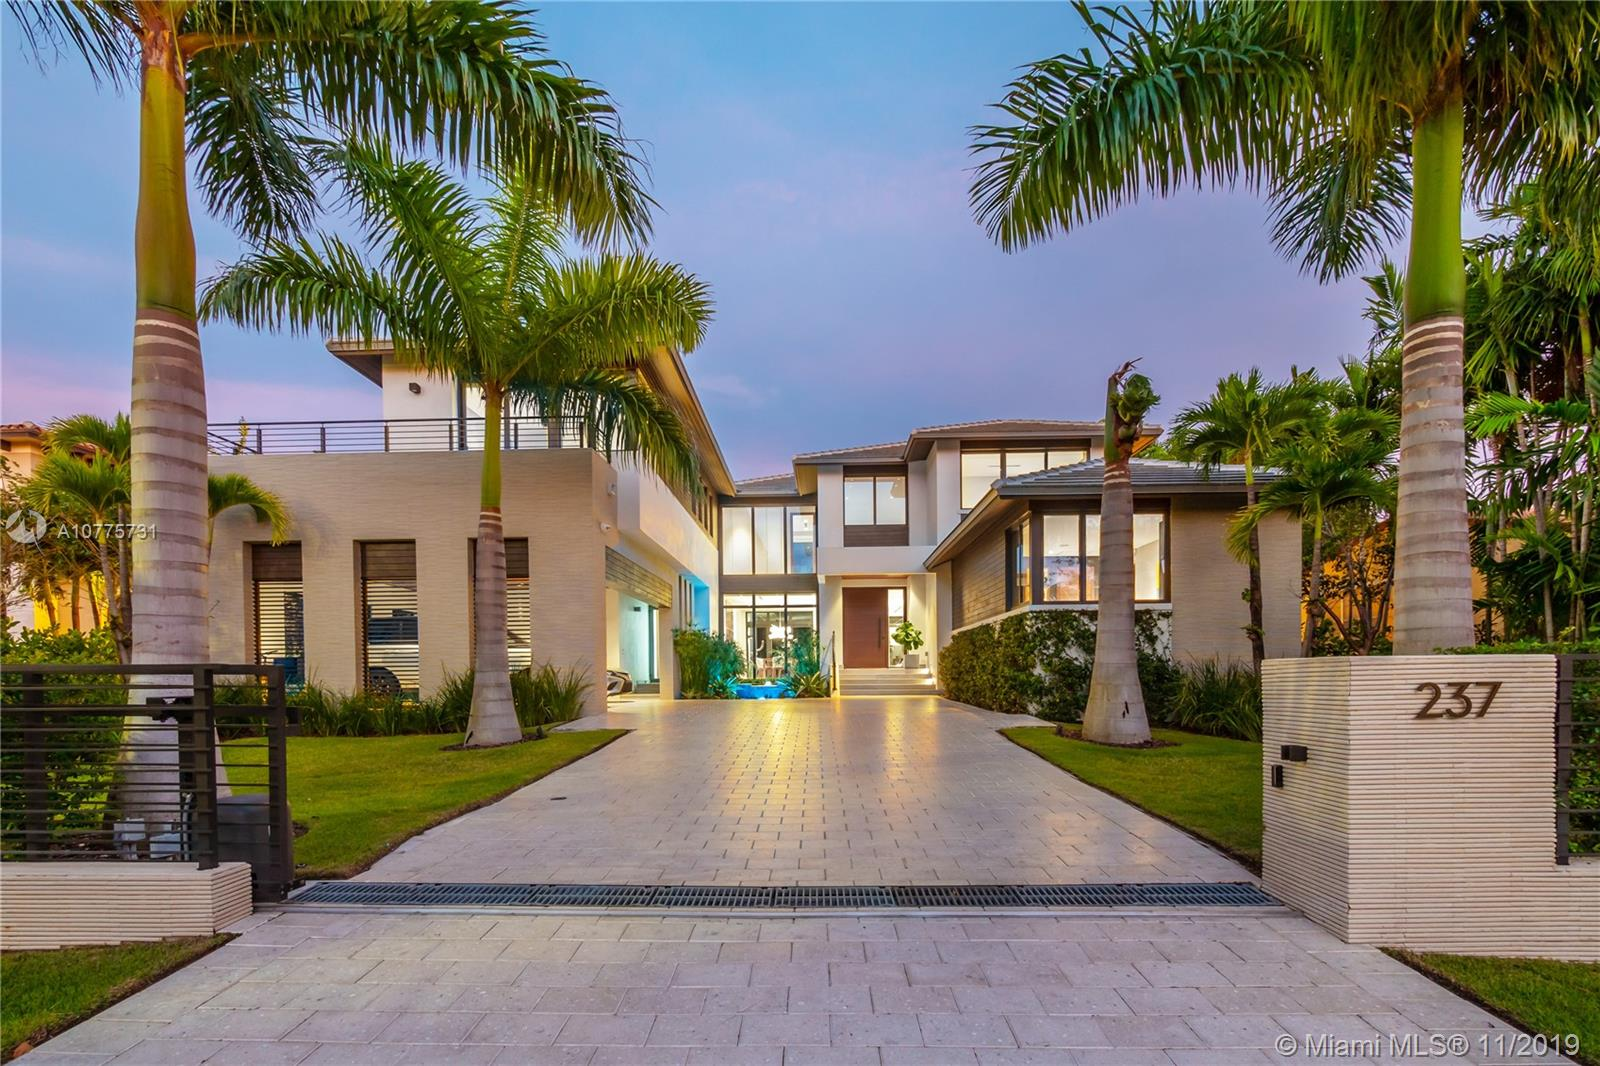 237 Bal Cross Dr Property Photo - Bal Harbour, FL real estate listing